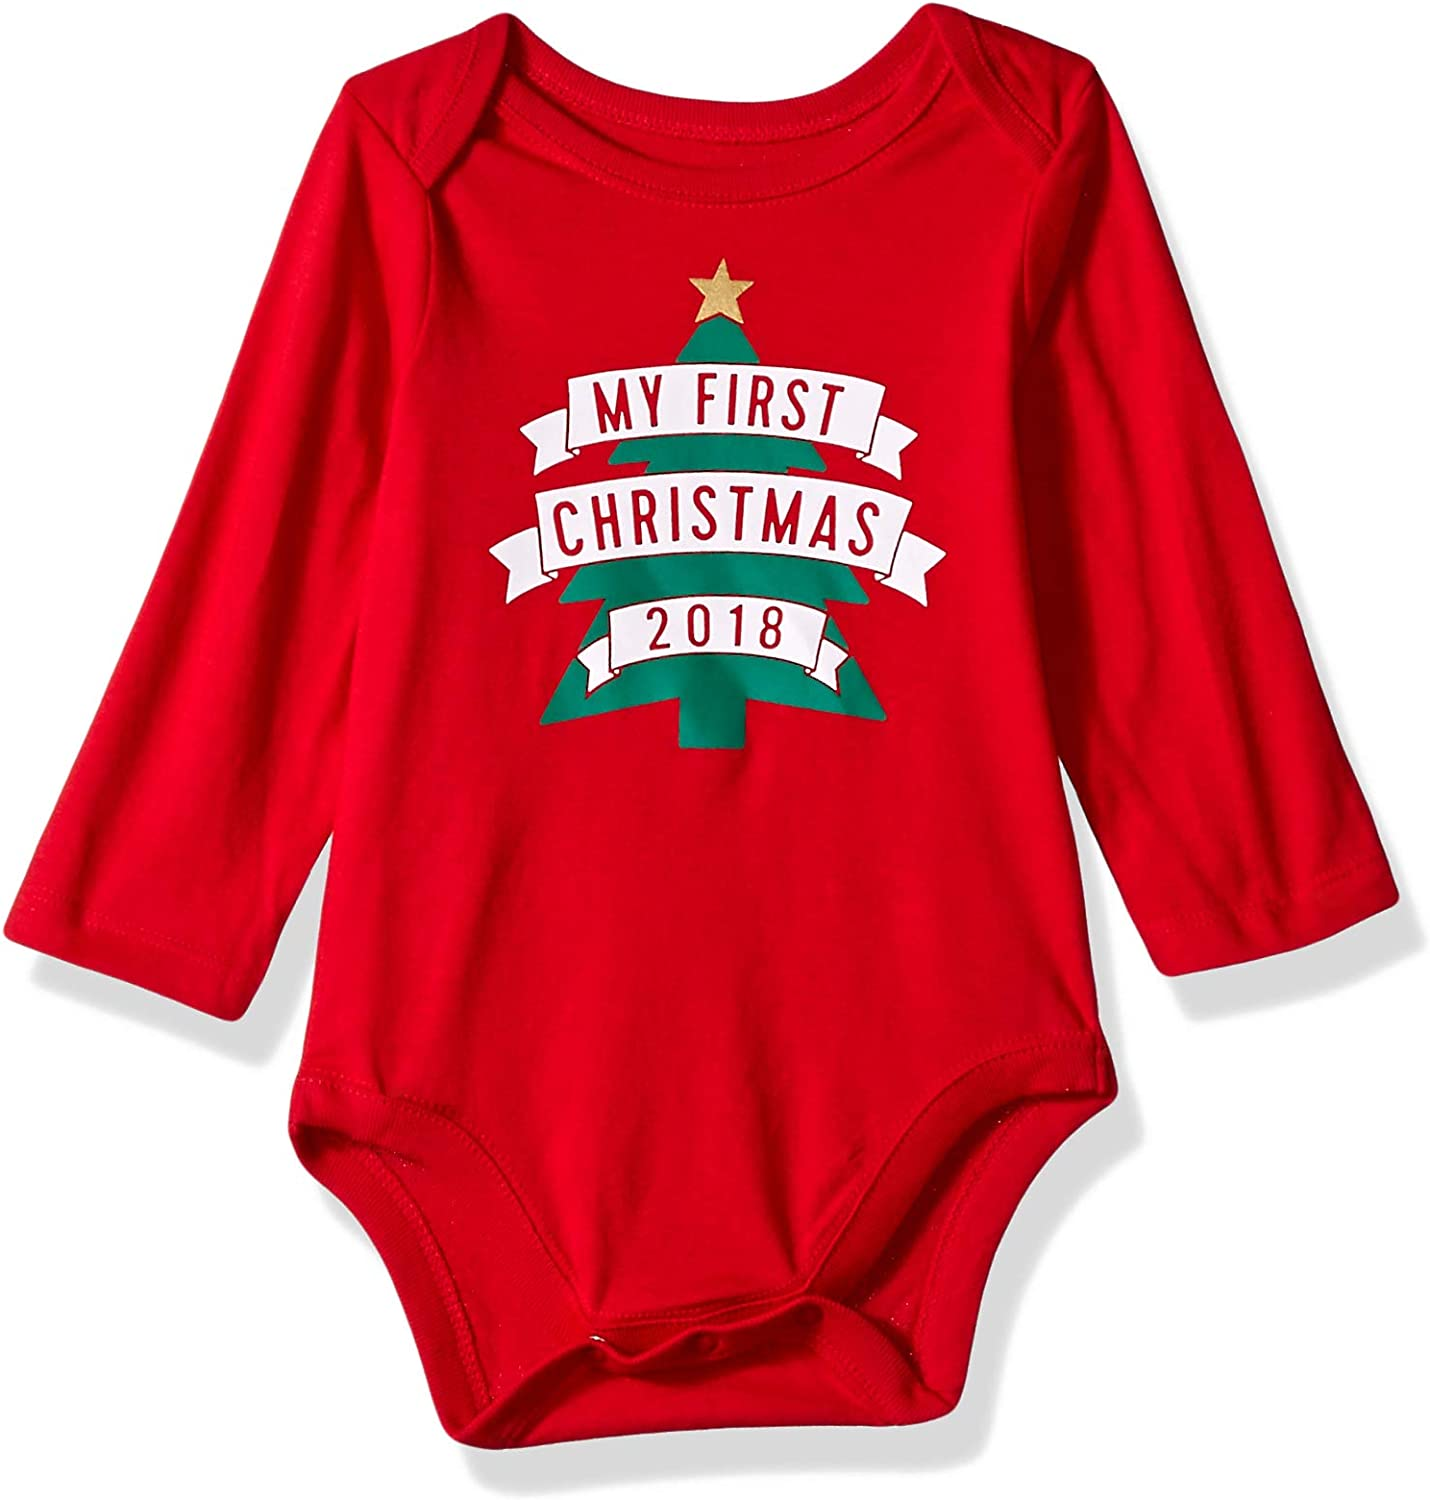 The Children's Place Baby Long Sleeve Graphic Layette